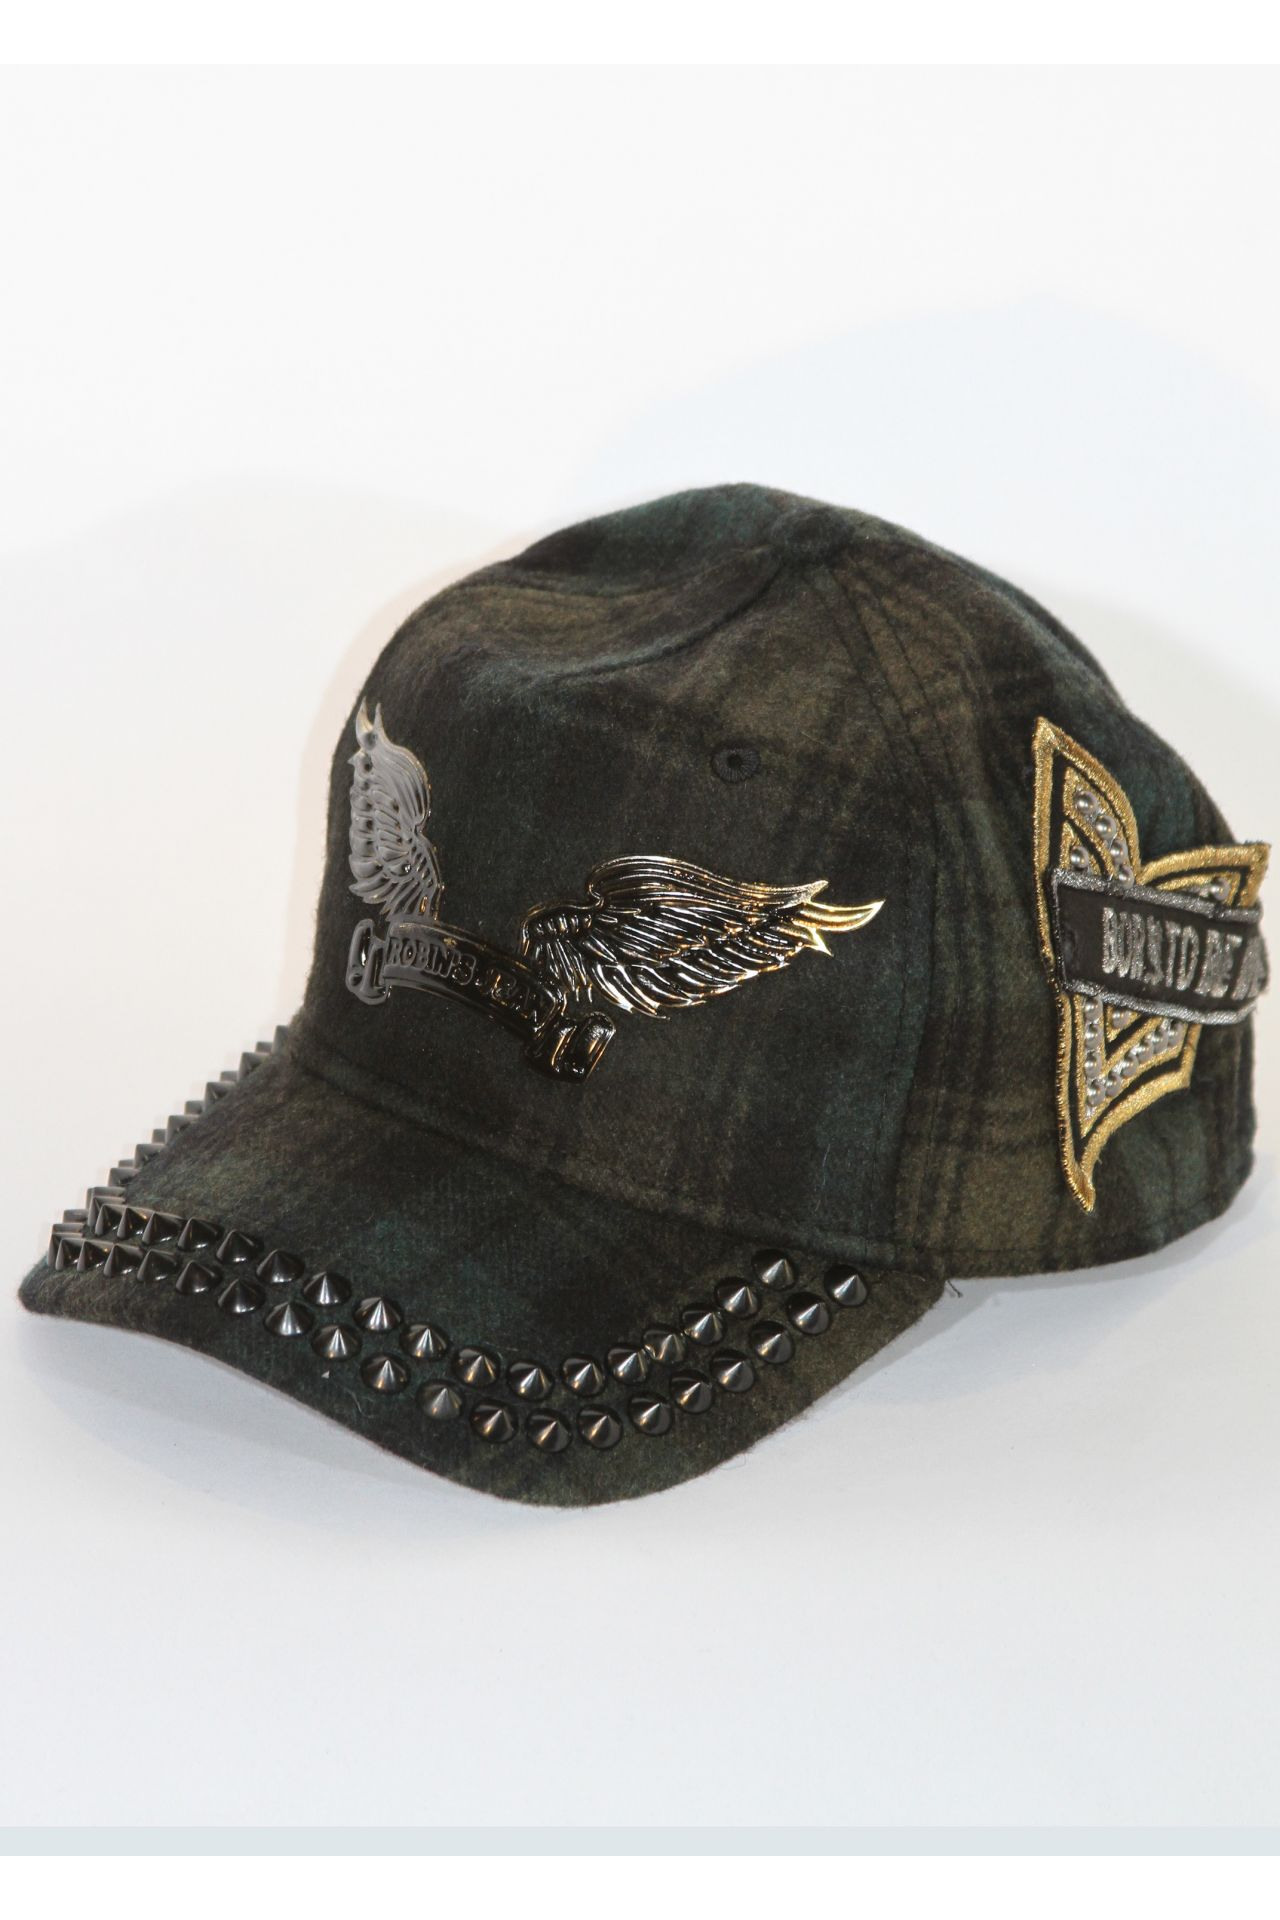 CAP IN GREEN WITH BLACK SPIKES & PATCHES